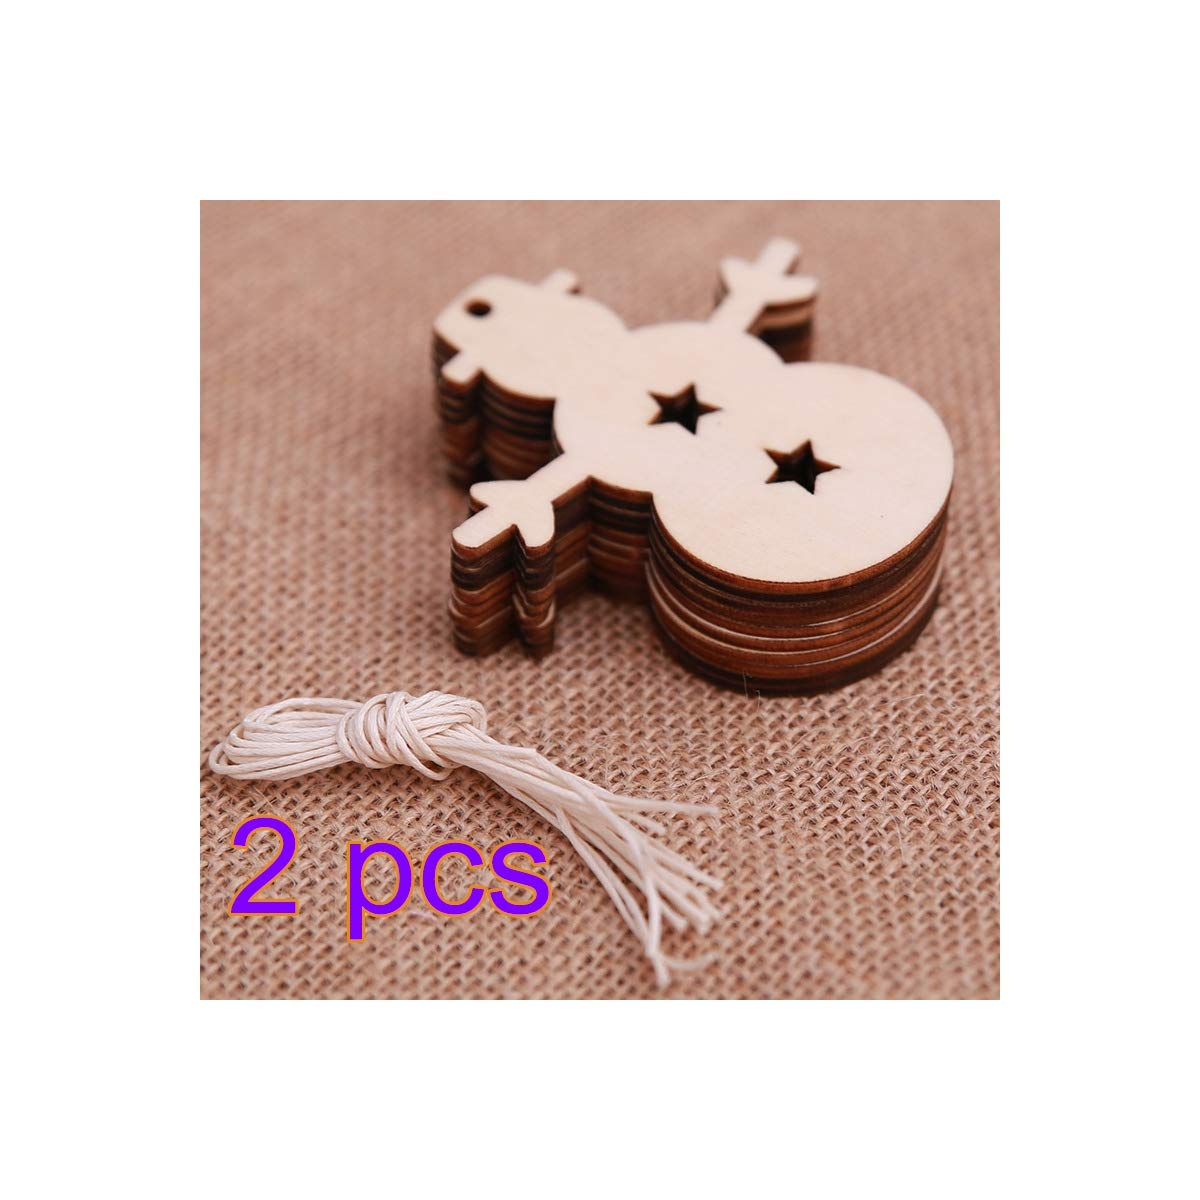 Takefuns Snowman Christmas Tree Blank Wood Discs Bulk Holes Crafts Centerpieces 30 Pieces Unfinished Wooden Christmas Cutouts Ornaments to Paint